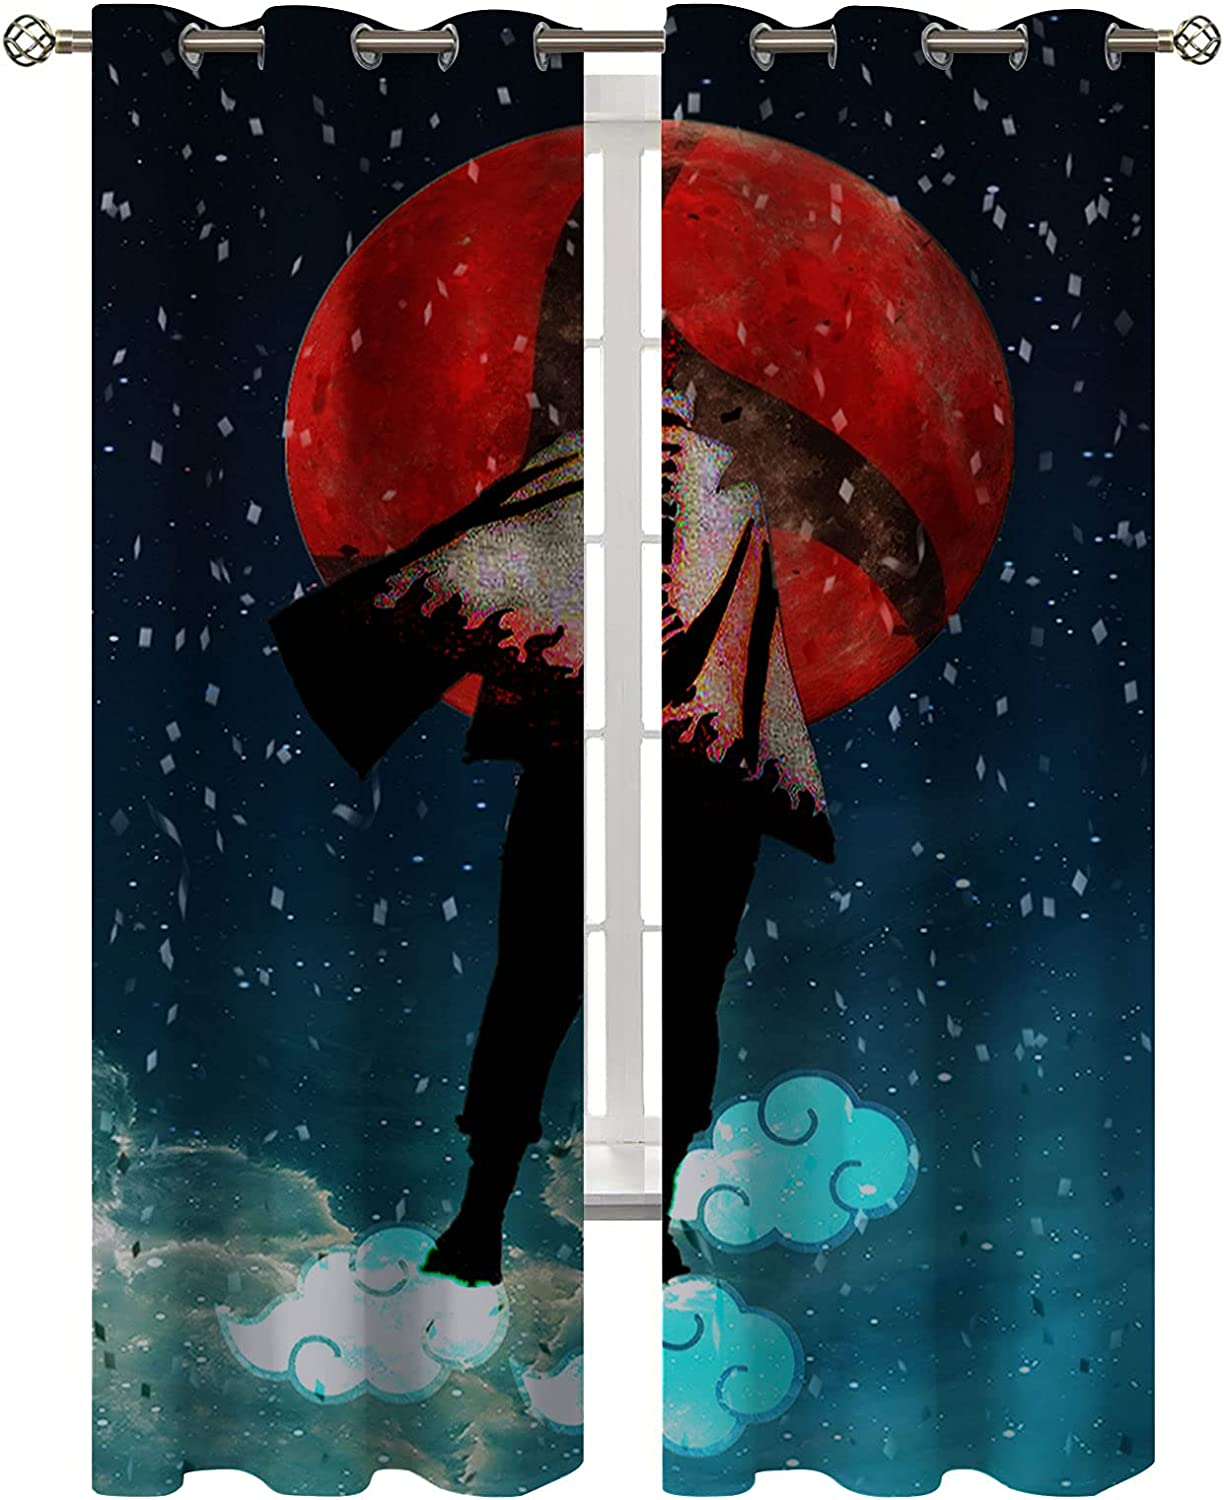 Anime Art Cloud Starry NEW before selling ☆ Cool Boys 2021 Deco Curtain Children's Bedroom